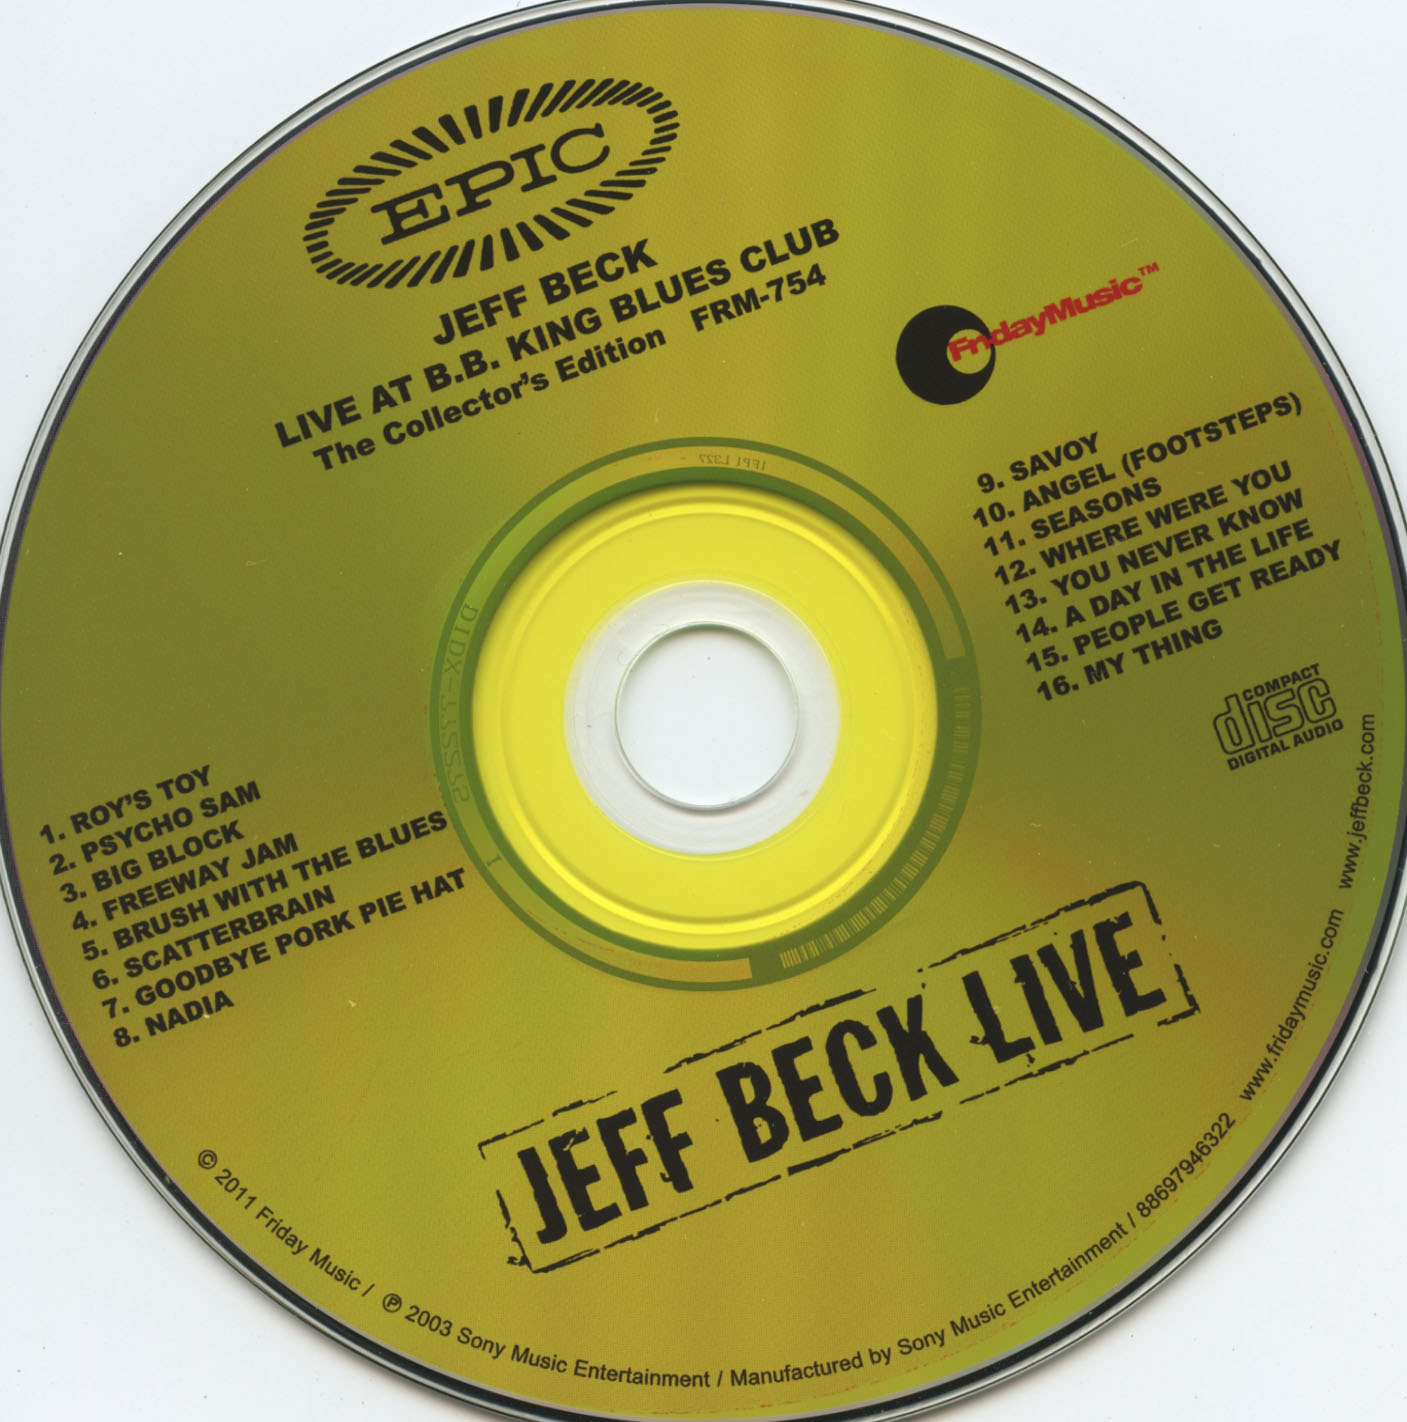 Jeff Beck - Live At B.B. King Blues Club and Grill - CD